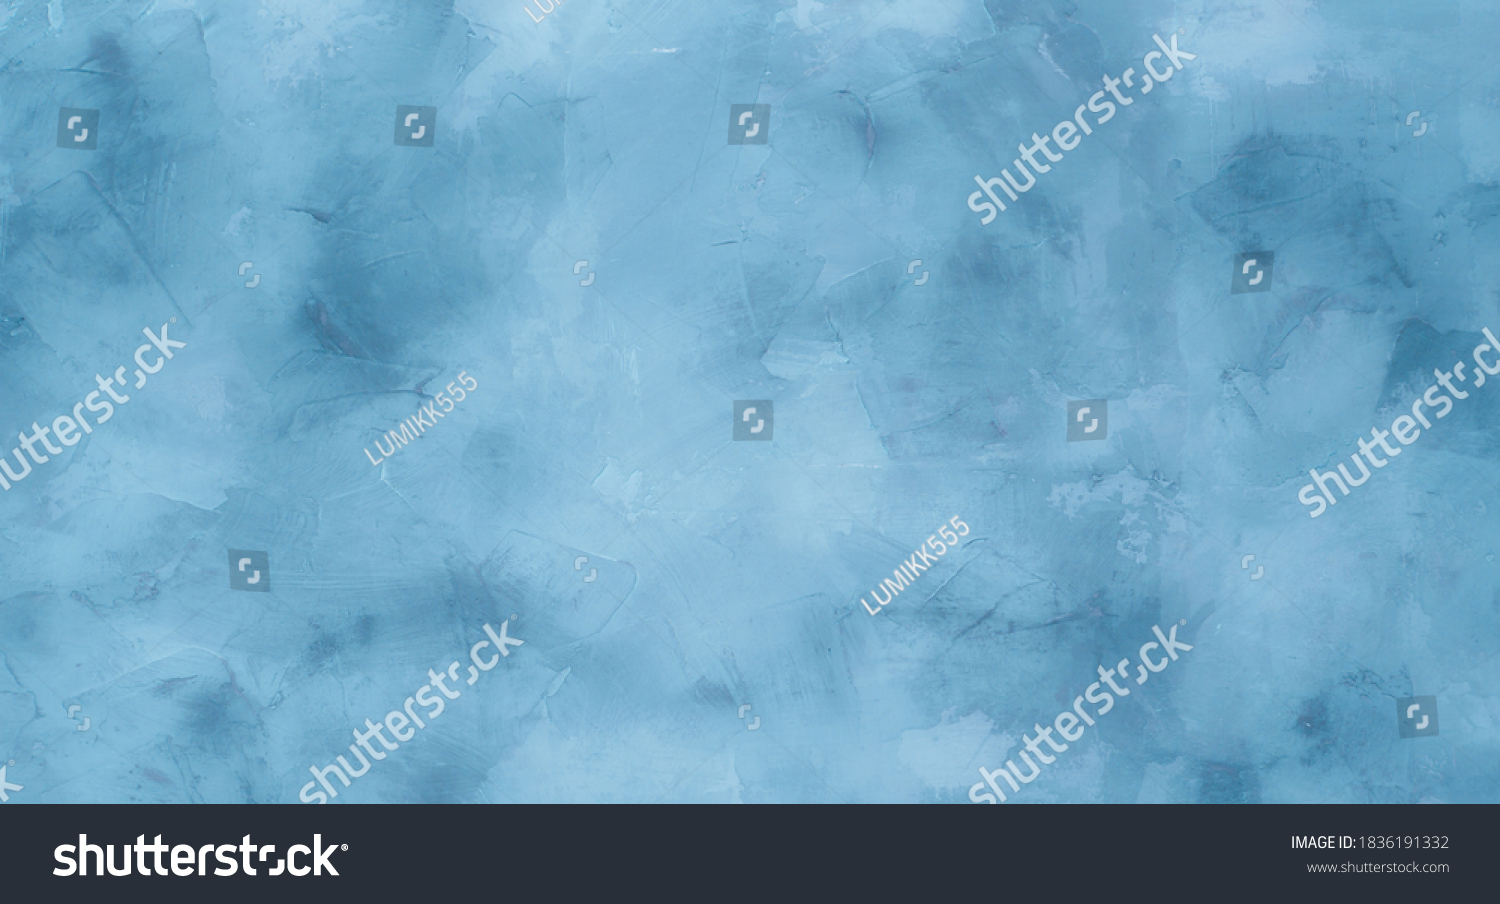 Abstract Grunge light blue stucco Background. Decorative artistic Wall room Close up. Rough Surface plaster Texture With Copy Space for design. #1836191332